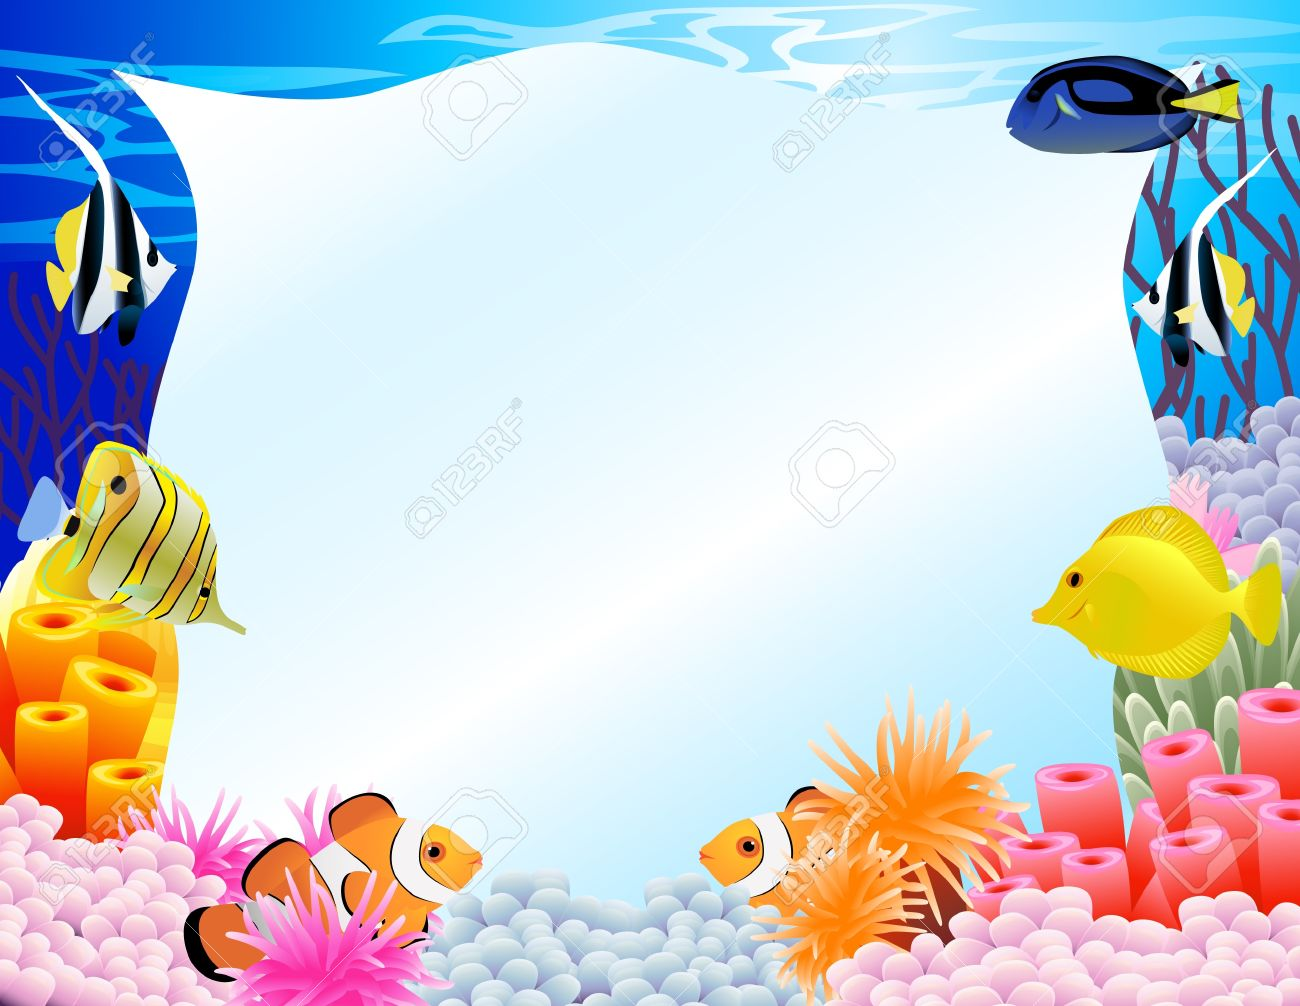 Under the sea background clipart 3 » Clipart Station.